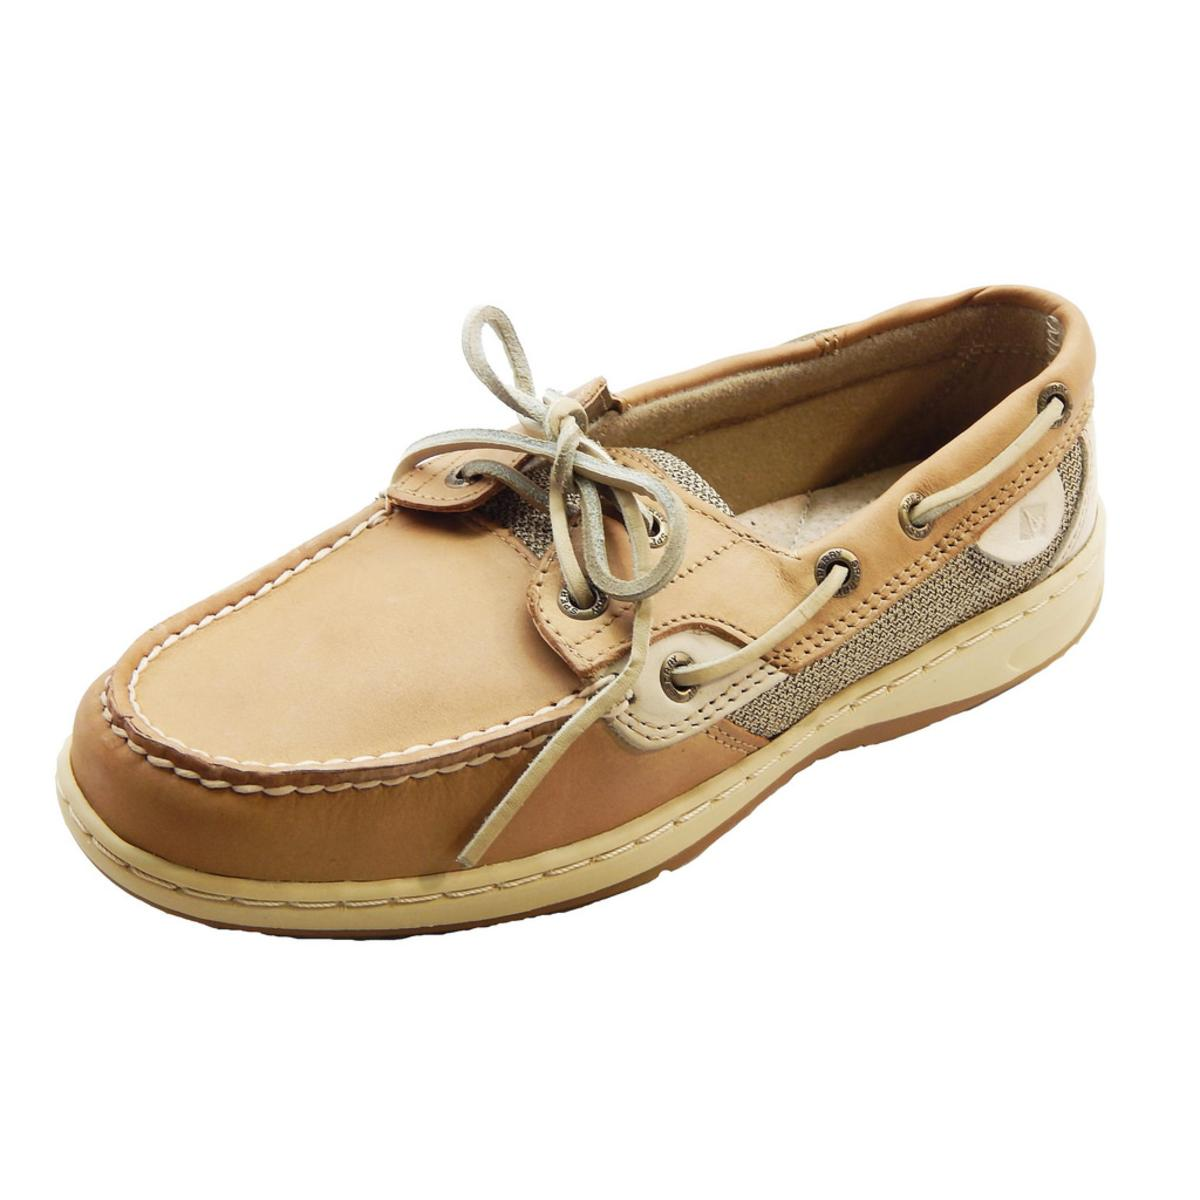 Details about Sperry Top-Sider Bluefish 2 Eye Womens Linen Oat Boat Shoes 9f9aa1fed81